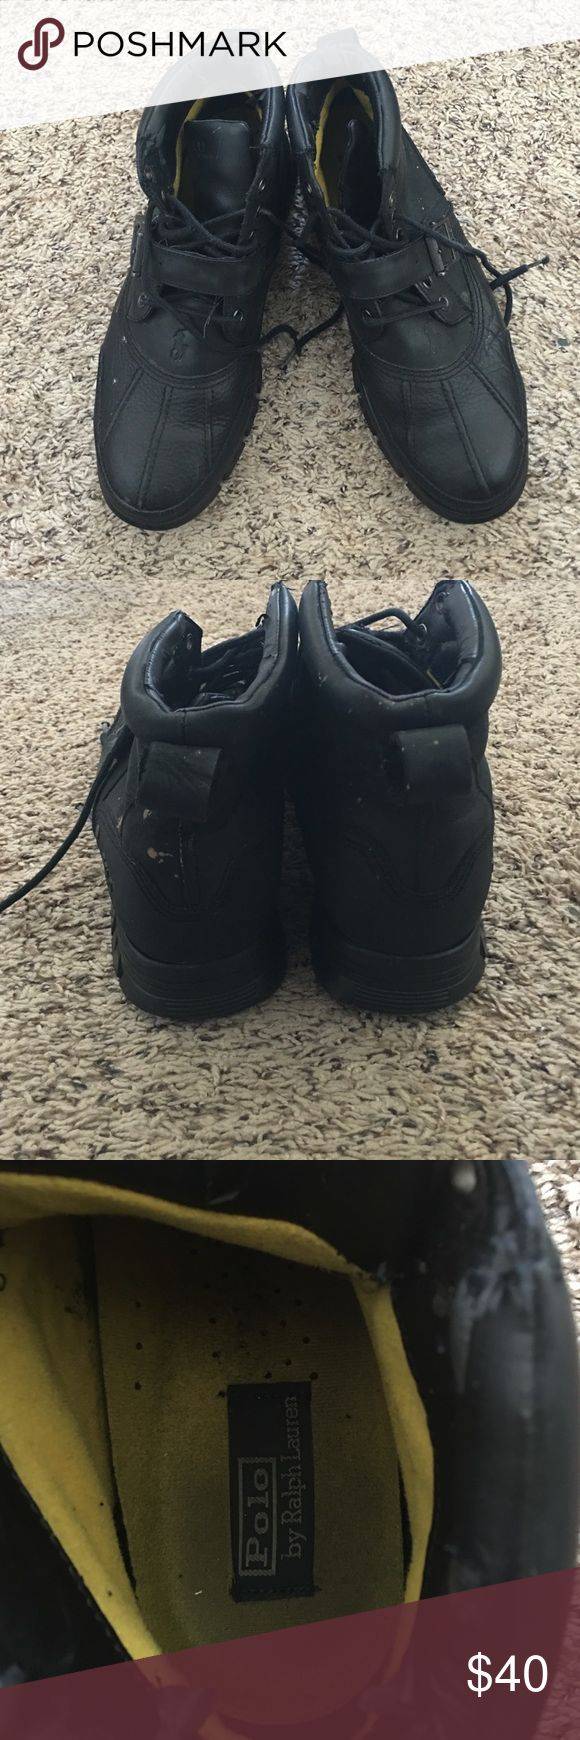 Black Leather Polo Boots for Men! Black Leather Polo by Ralph Lauren boot for Men! Great condition! Polo by Ralph Lauren Shoes Boots